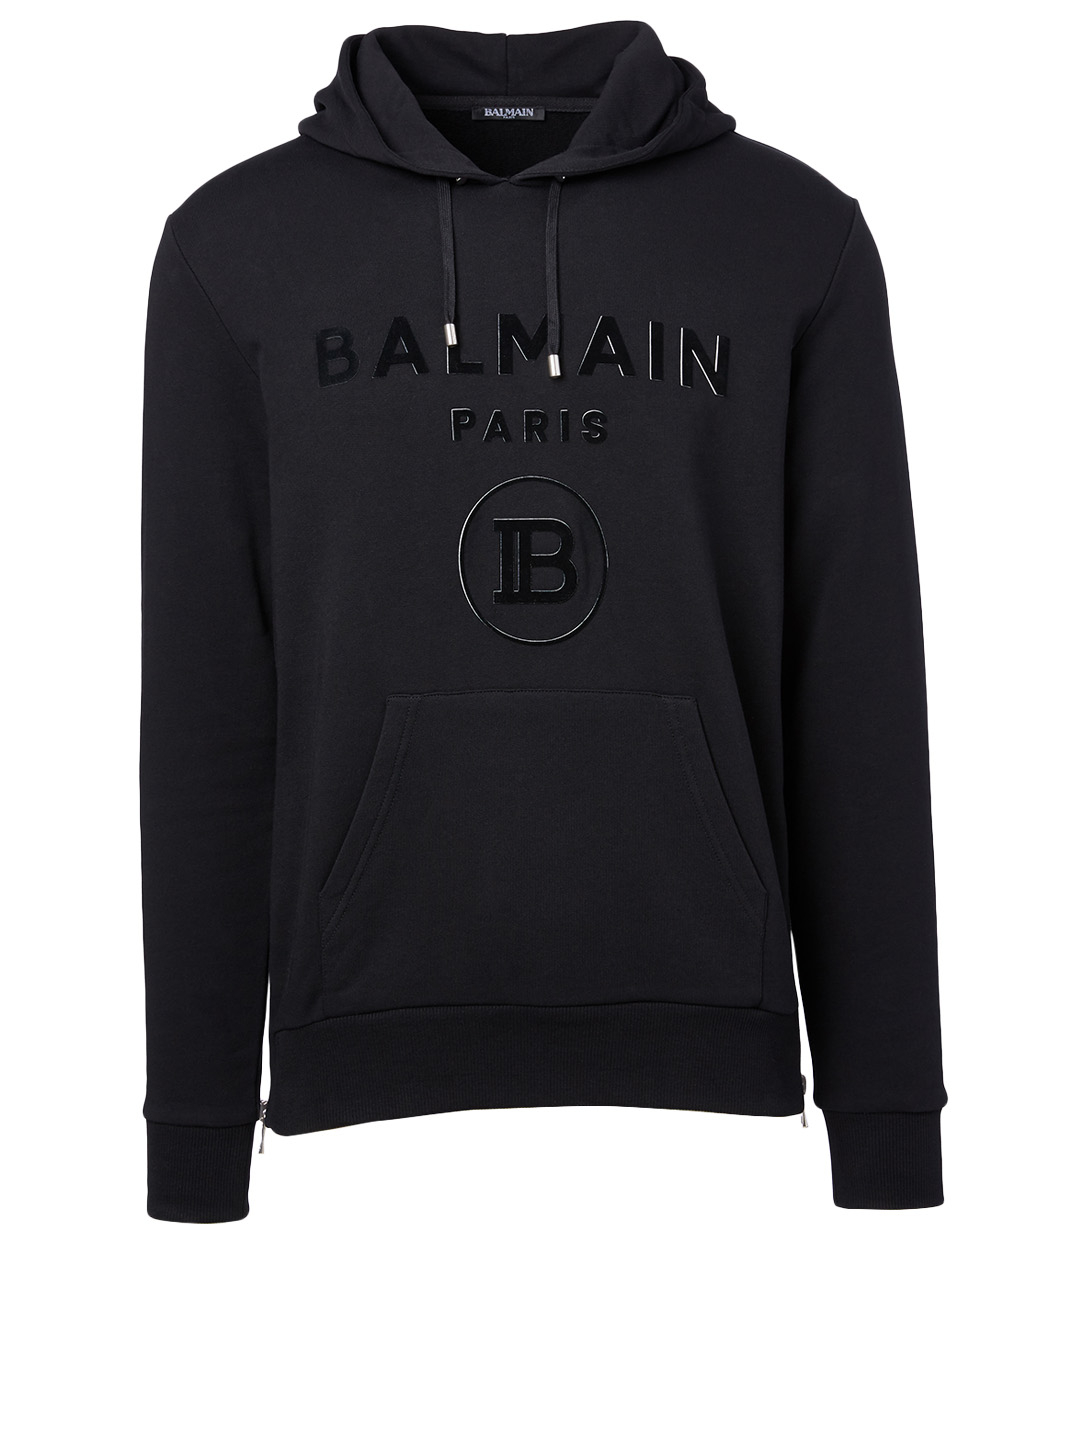 BALMAIN Cotton Logo Hoodie Men's Black